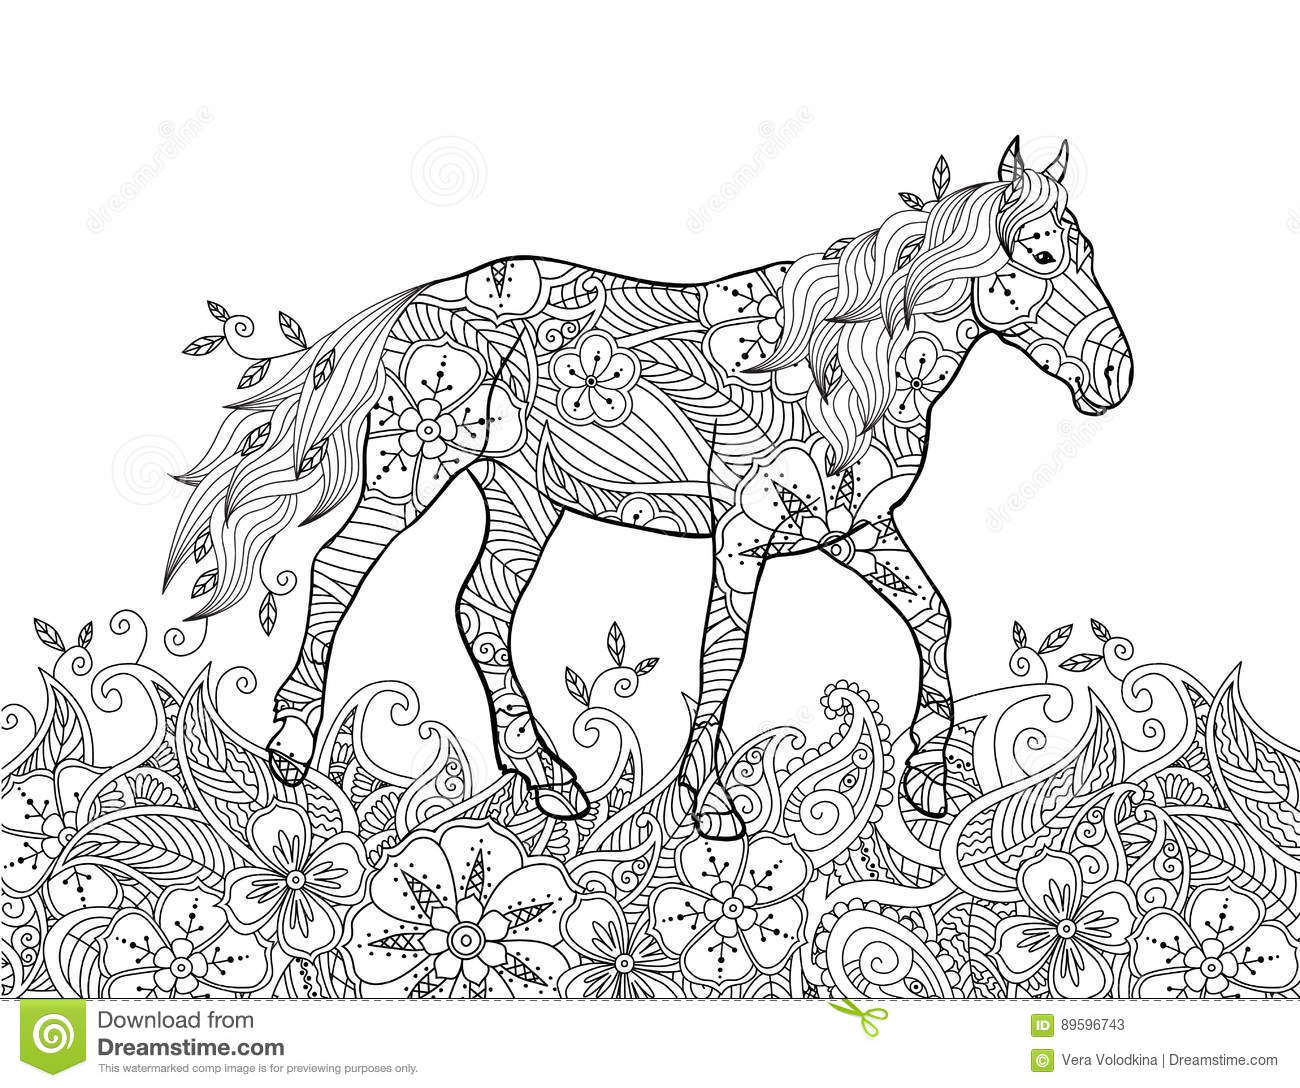 meadow animals coloring pages - photo#43